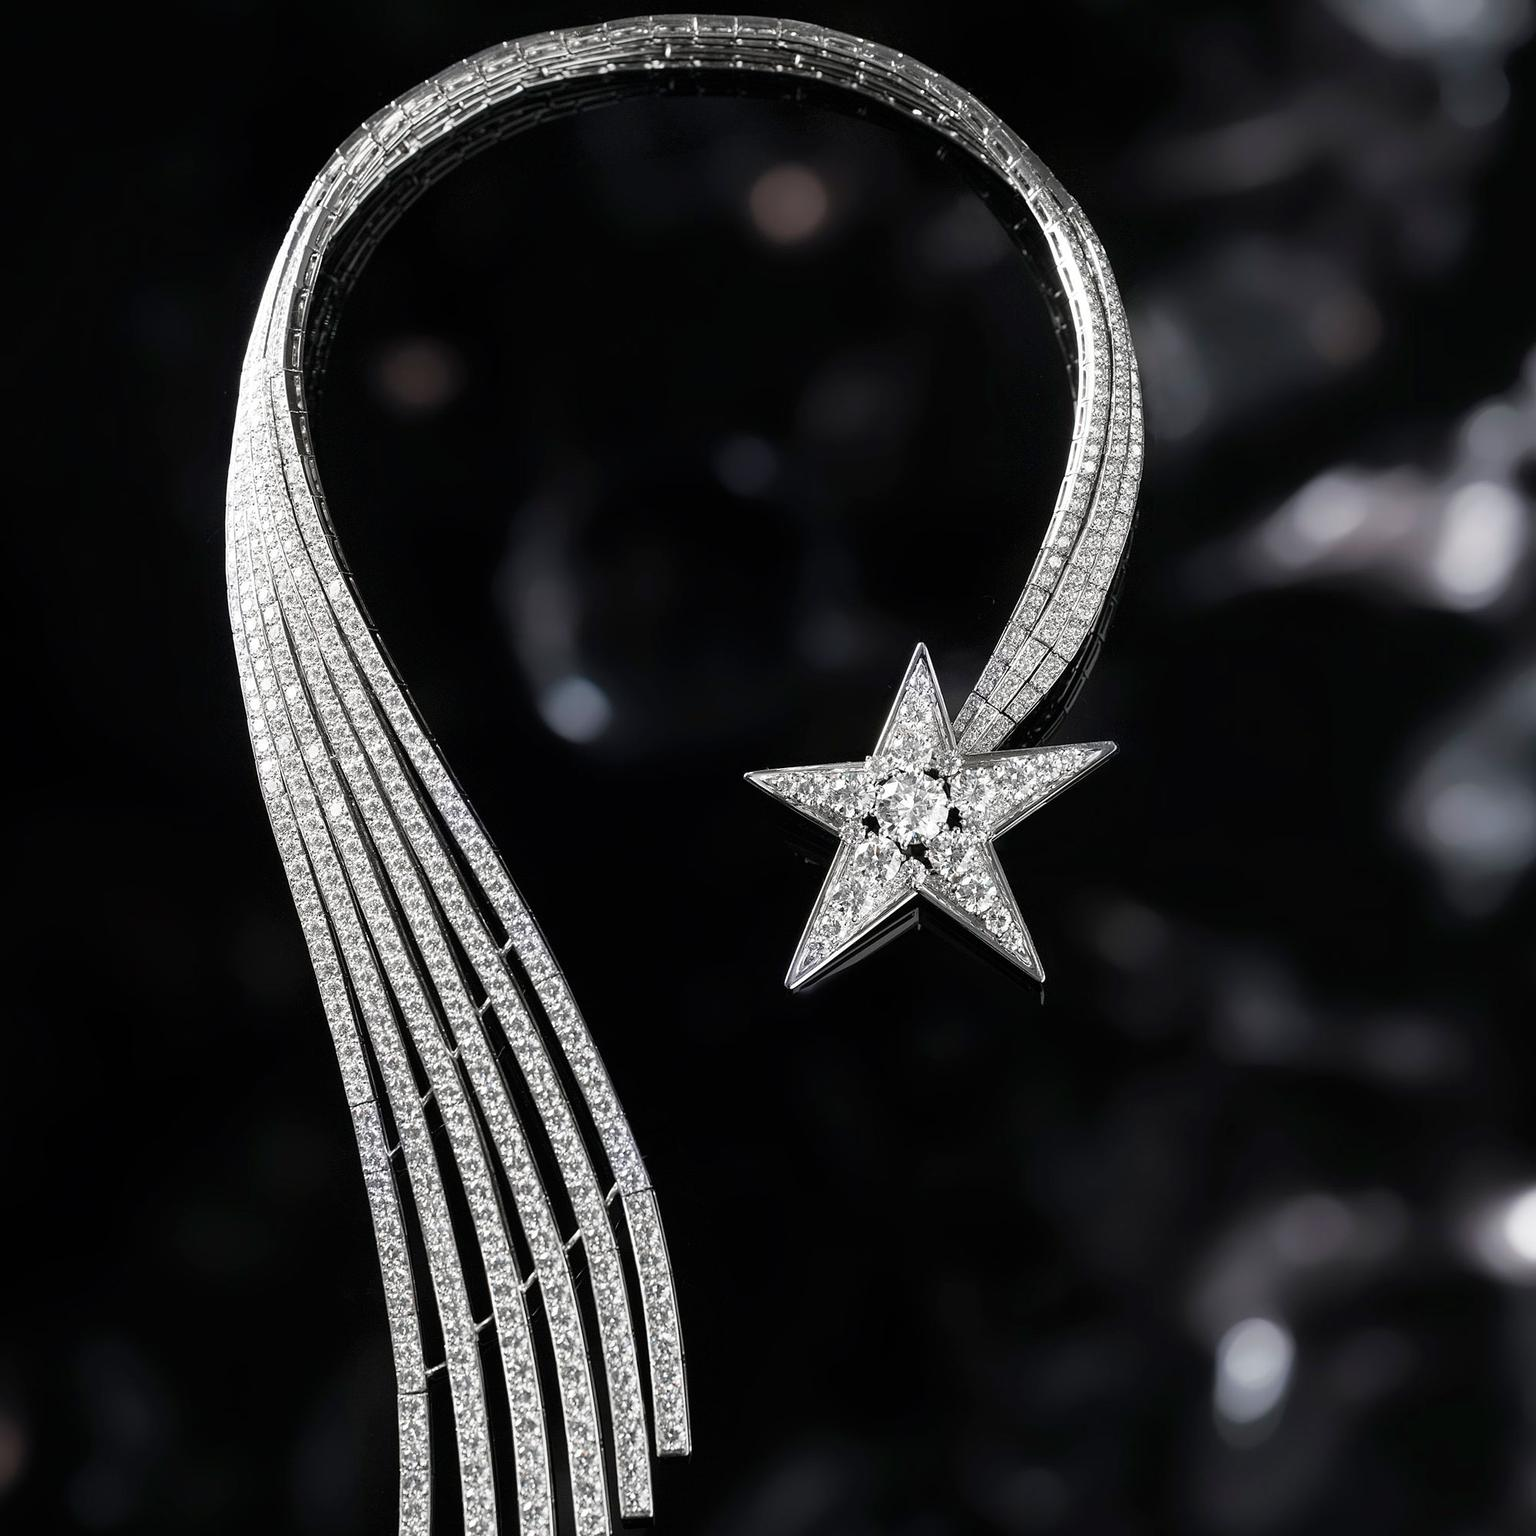 Chanel 1932 Comète diamond necklace